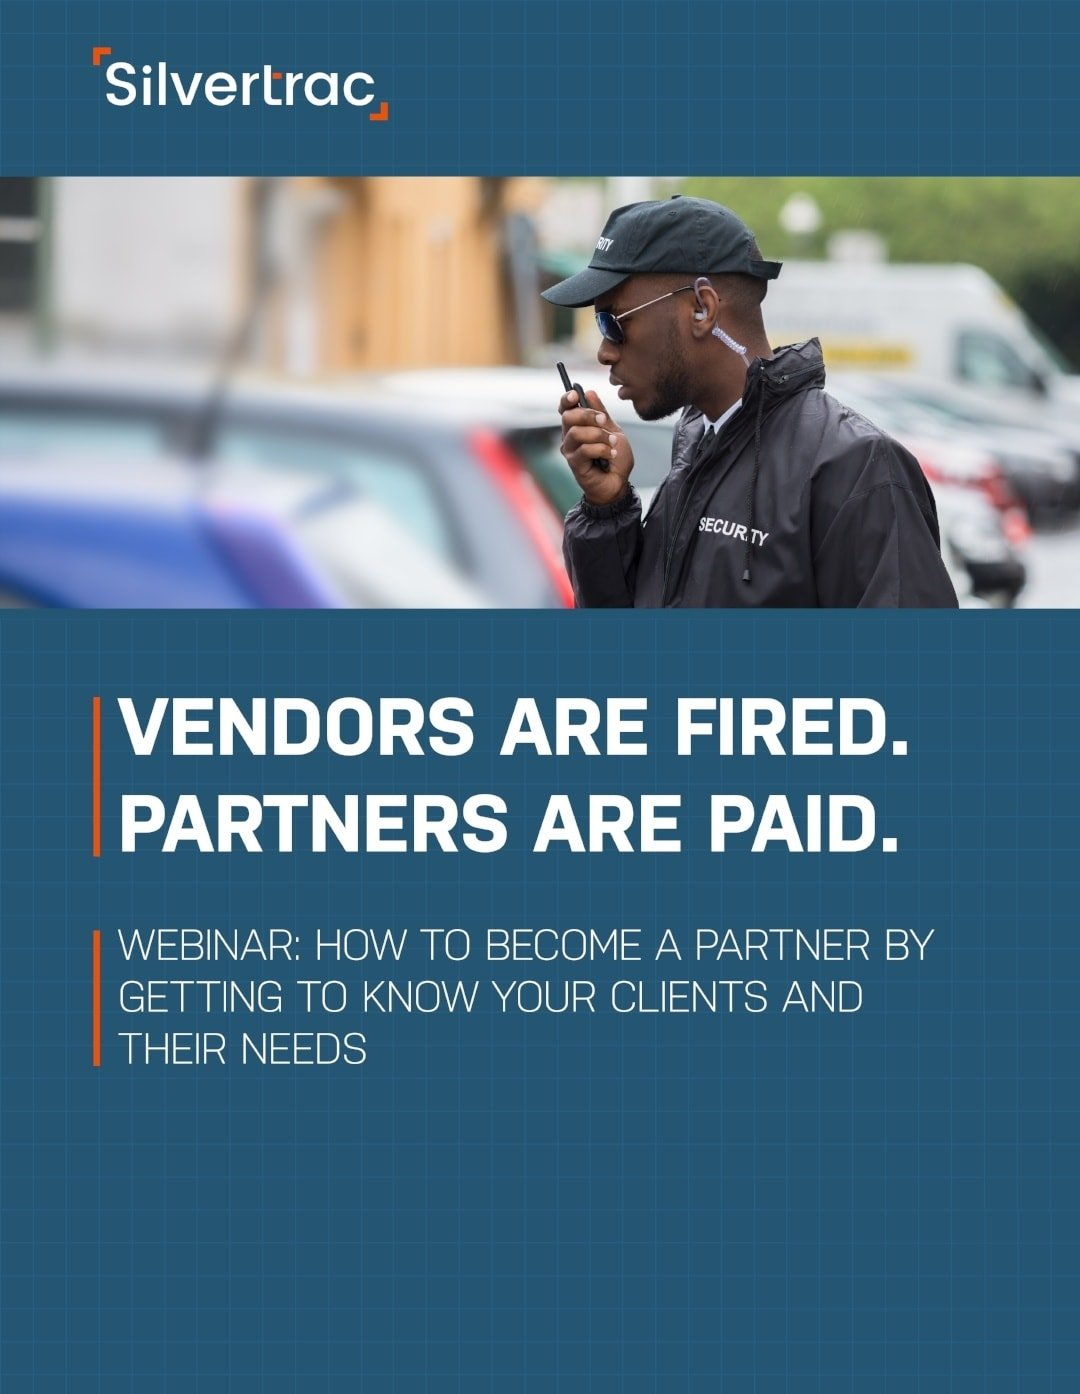 How to Become a Partner by Getting to Know Your Clients and Their Needs Webinar Silvertrac